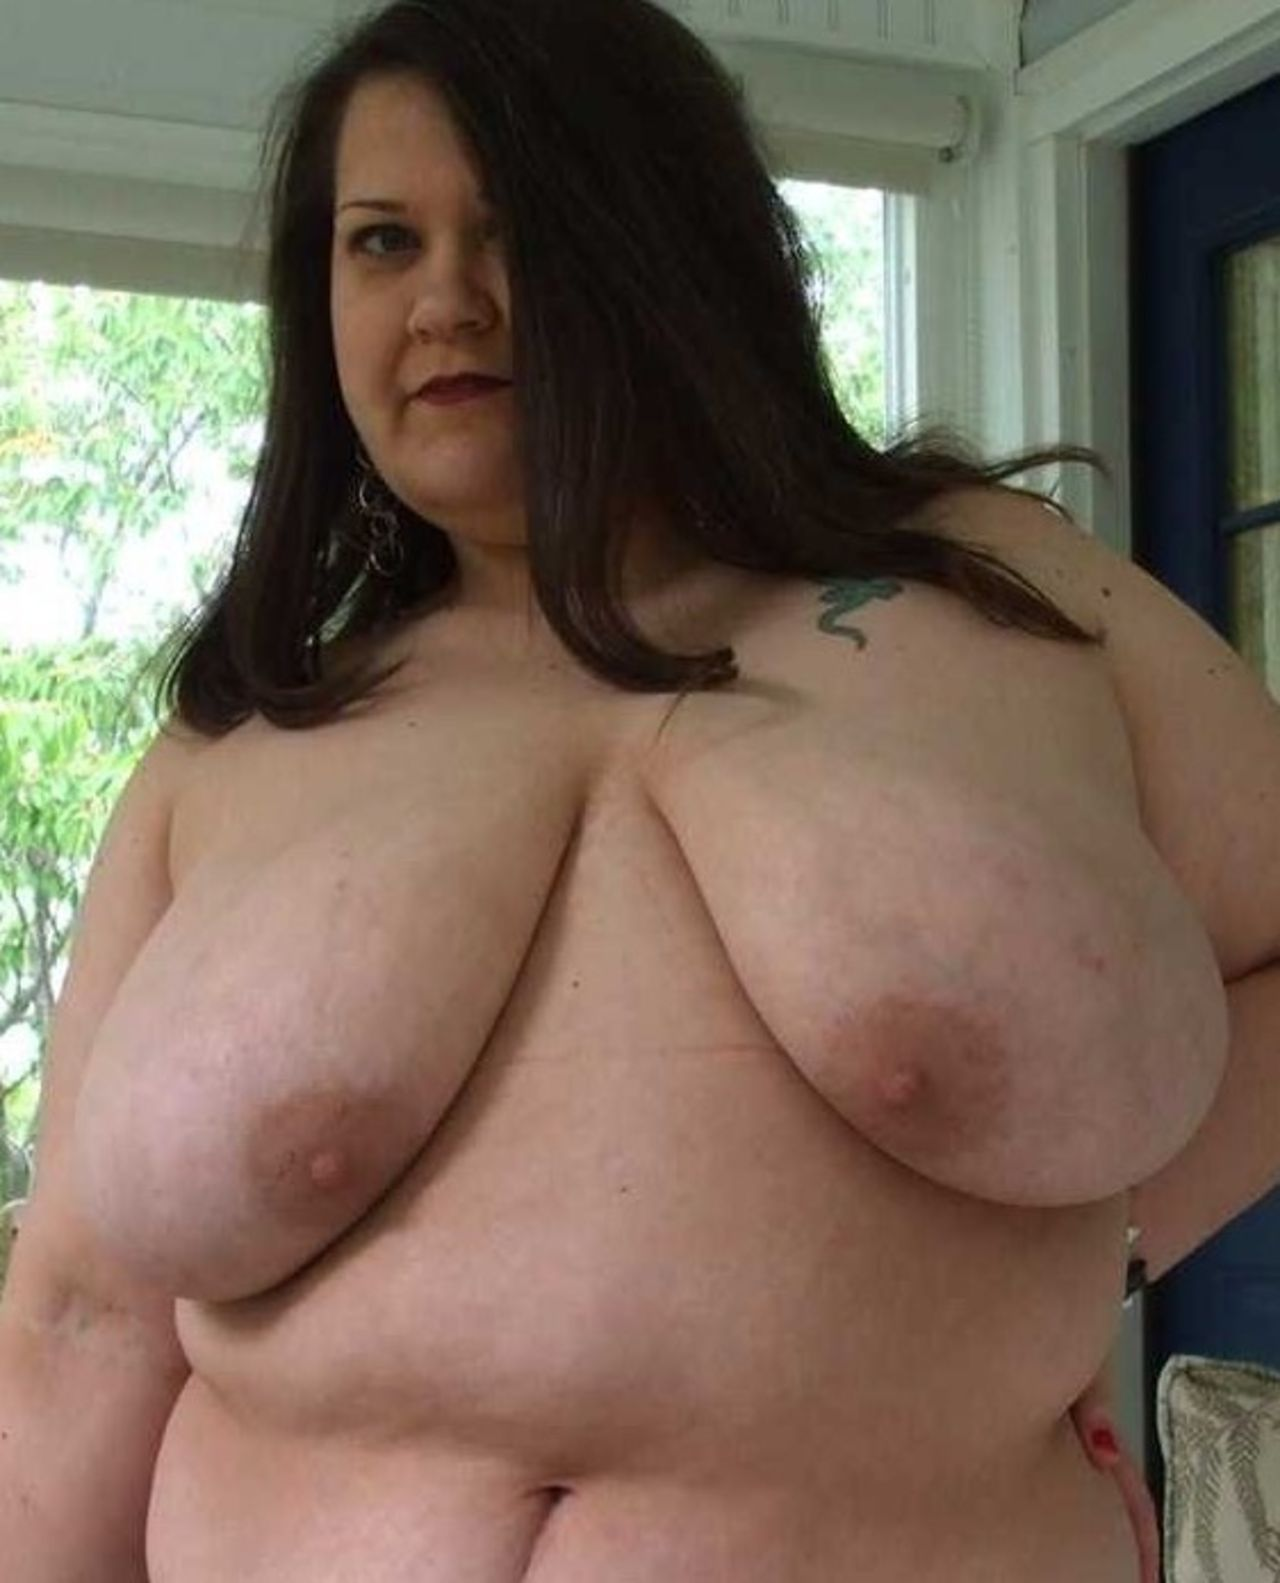 nighty-upload-free-porn-pictures-tits-chubby